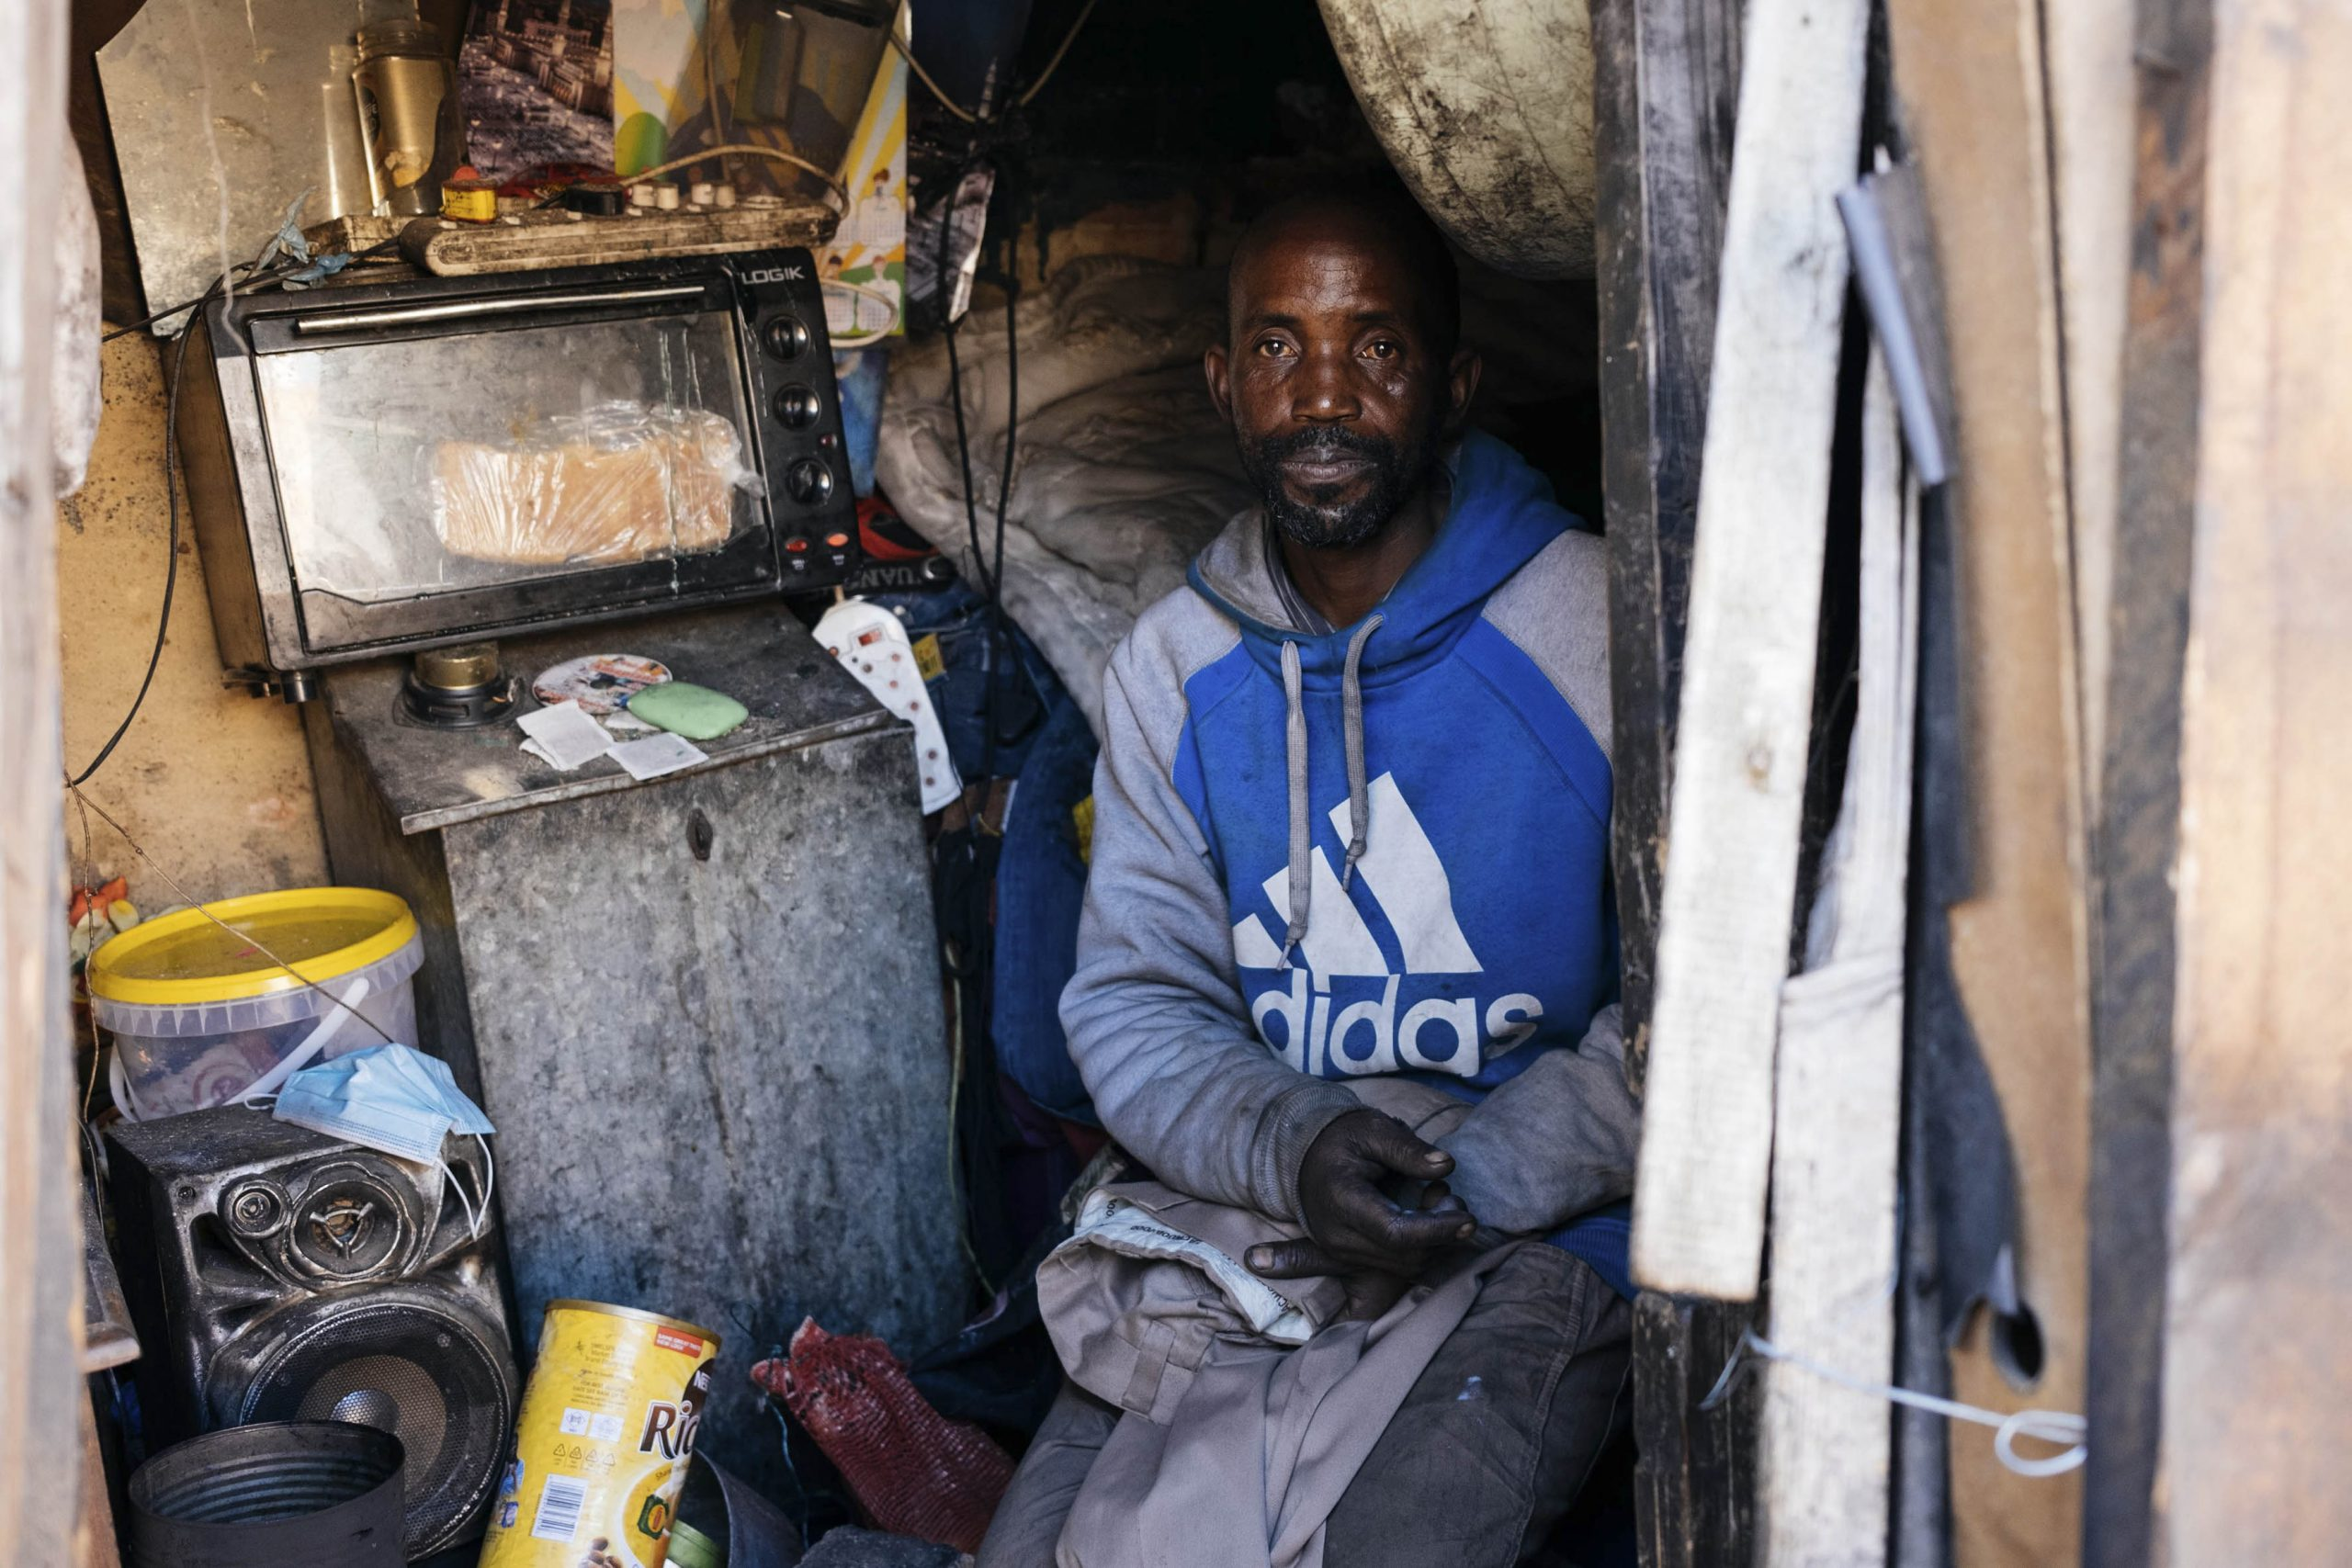 16 July 2020: Thabo Meva, 46, in his small inner-city living space. His most prized possession is a generator, which enables him to run a stove, his speaker and a television. But he does not have running water. He works as a part-time cleaner at the Johannesburg Central Police Station, where he has access to running water for his washing needs.